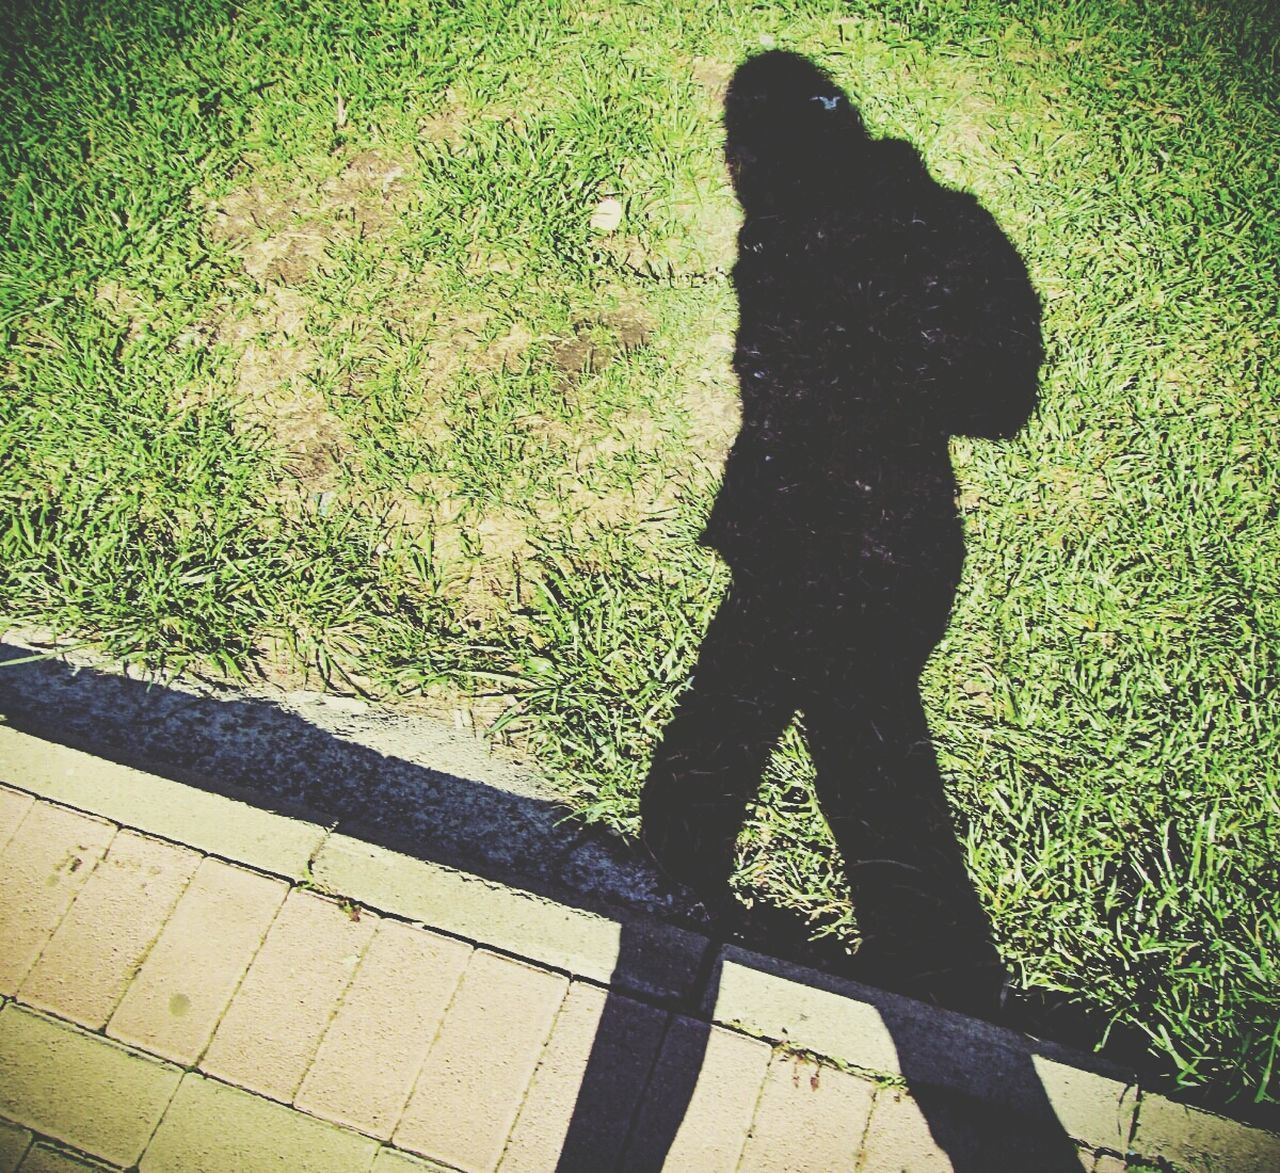 High Angle View Of Woman Shadow Falling On Grassy Field